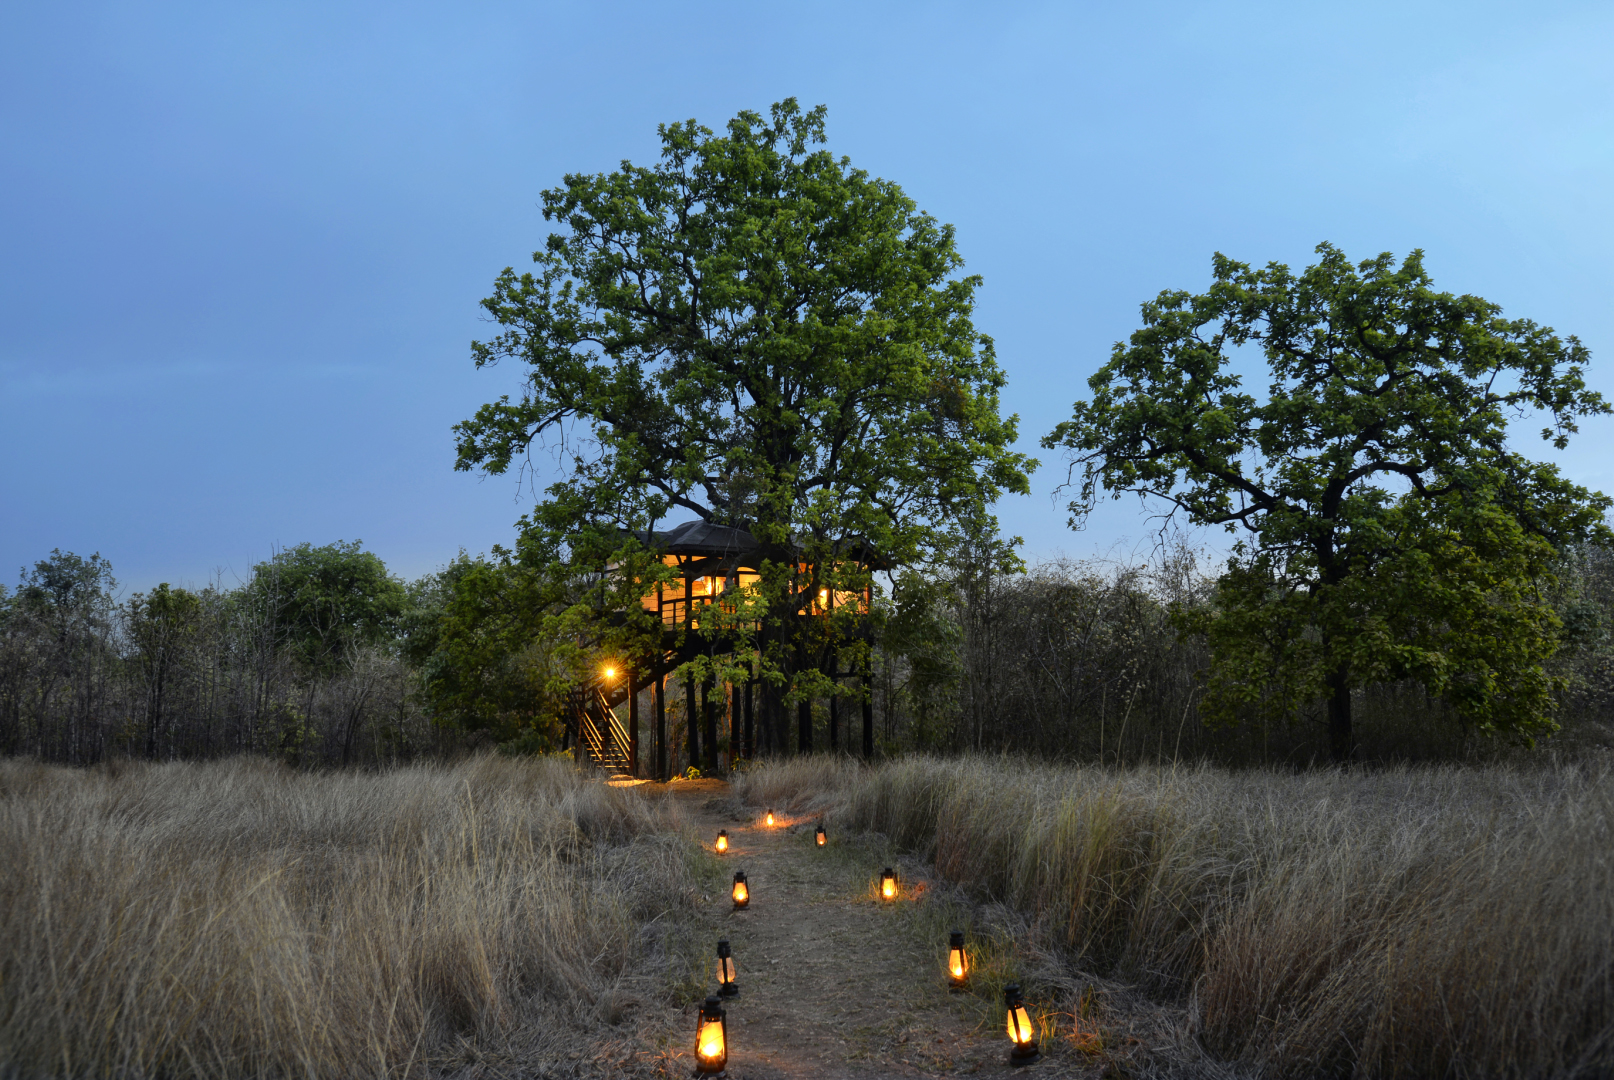 Pench Tree Lodge is home to six treehouses and six cottages for visitors